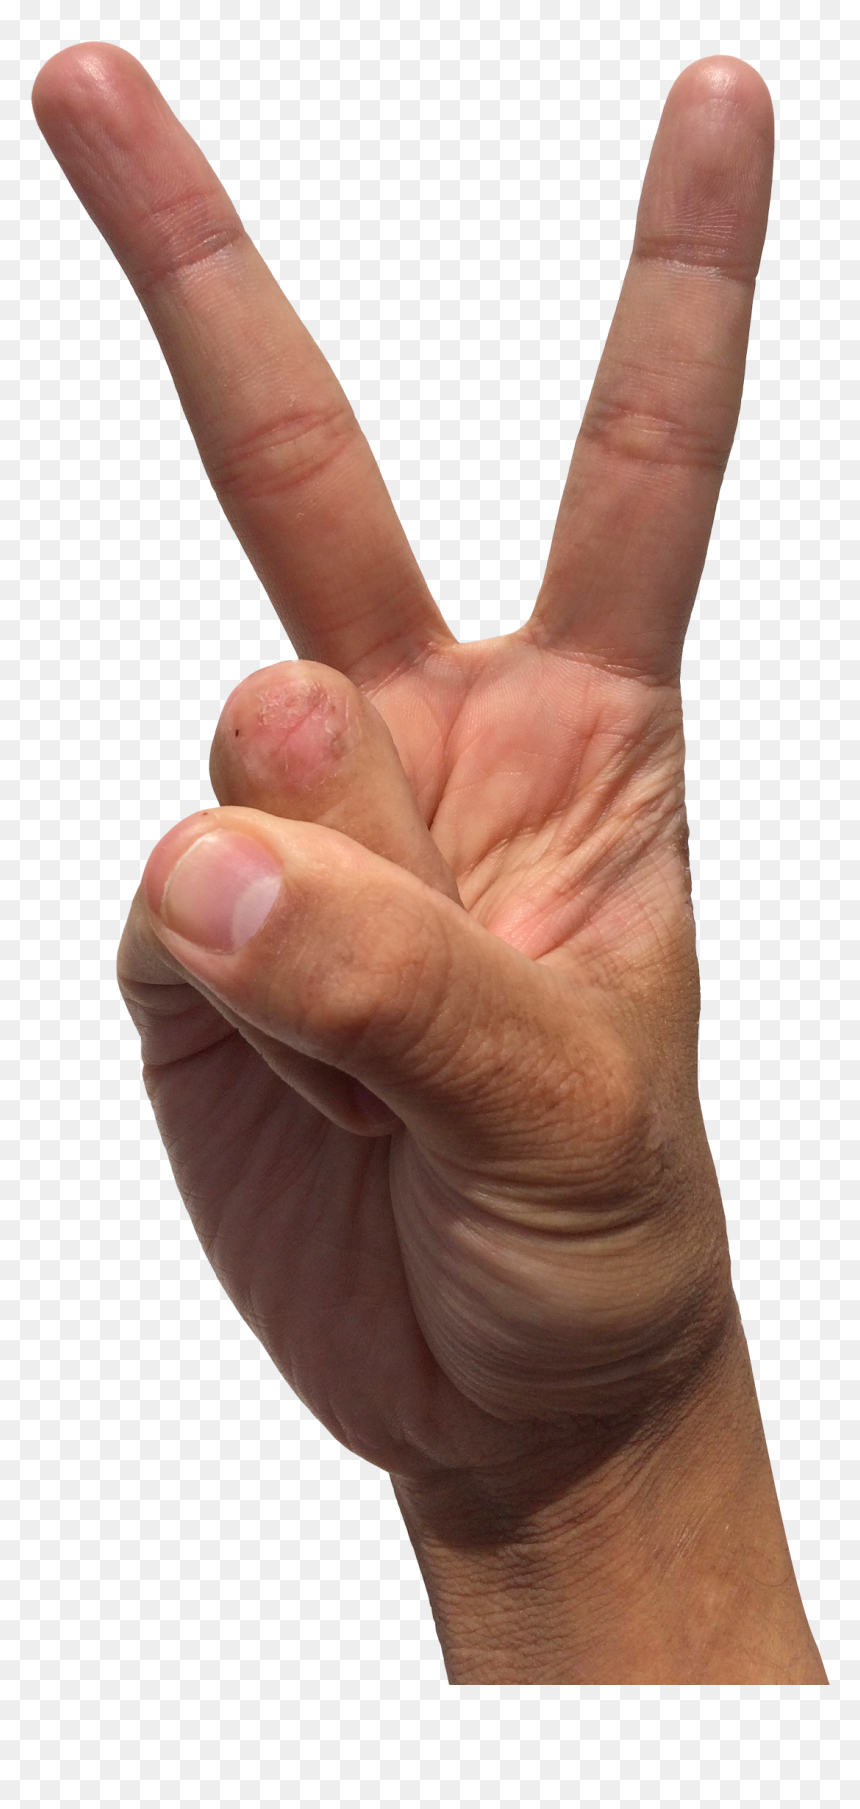 Transparent Peace Sign Fingers Hd Png Download Vhv Discover 114 free peace sign hand png images with transparent backgrounds. transparent peace sign fingers hd png